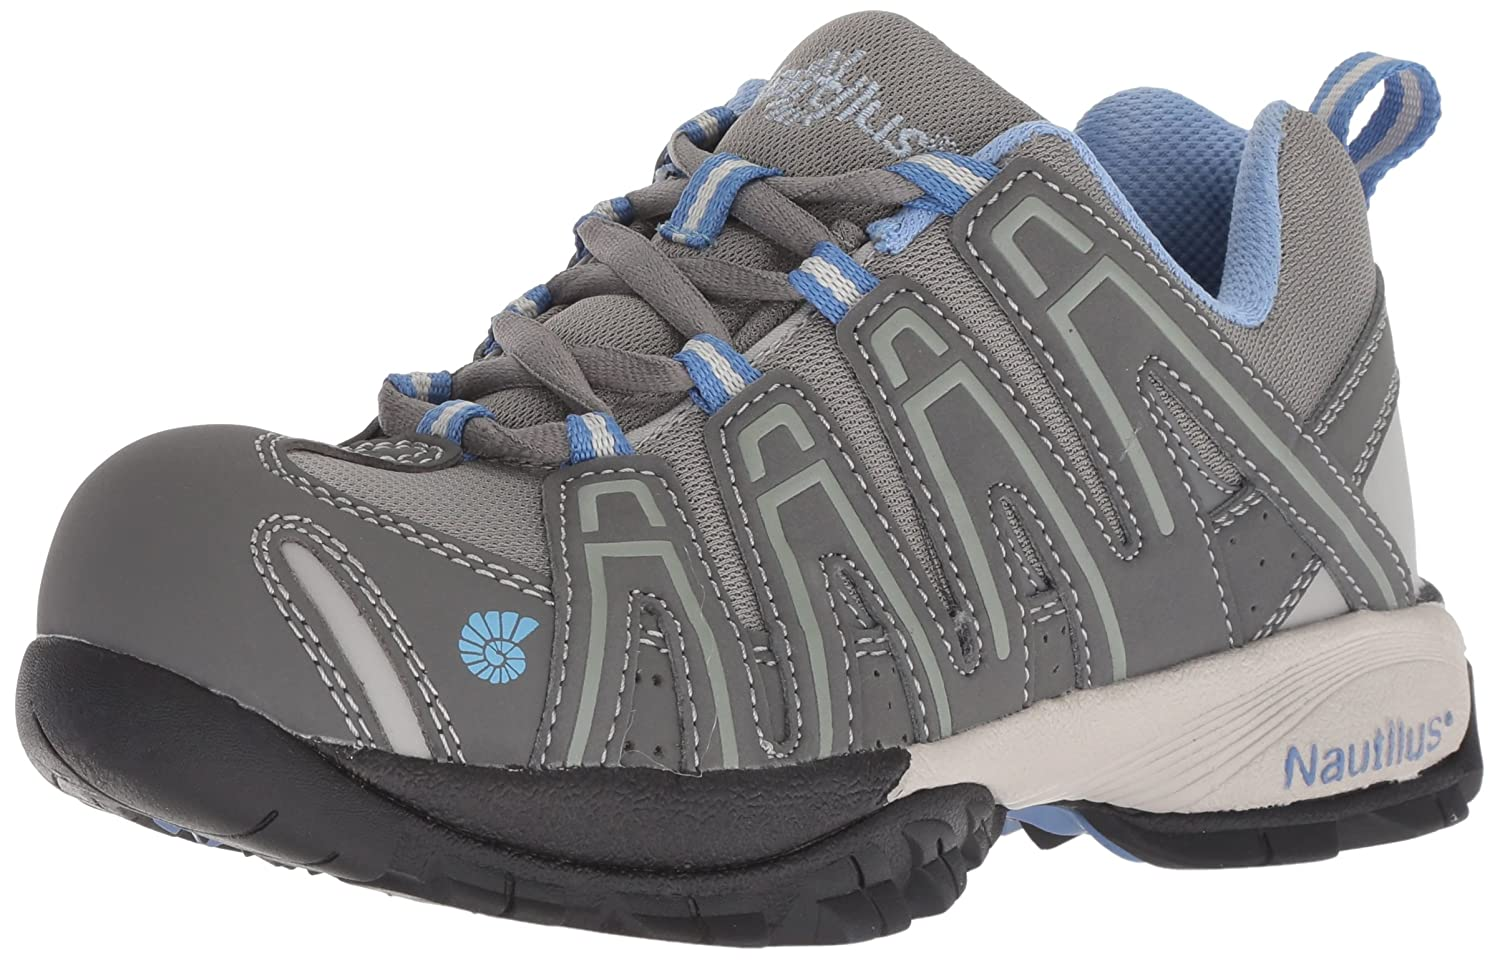 Nautilus Safety Footwear レディース B005BK5VU8 7.5 B(M) US|グレー グレー 7.5 B(M) US